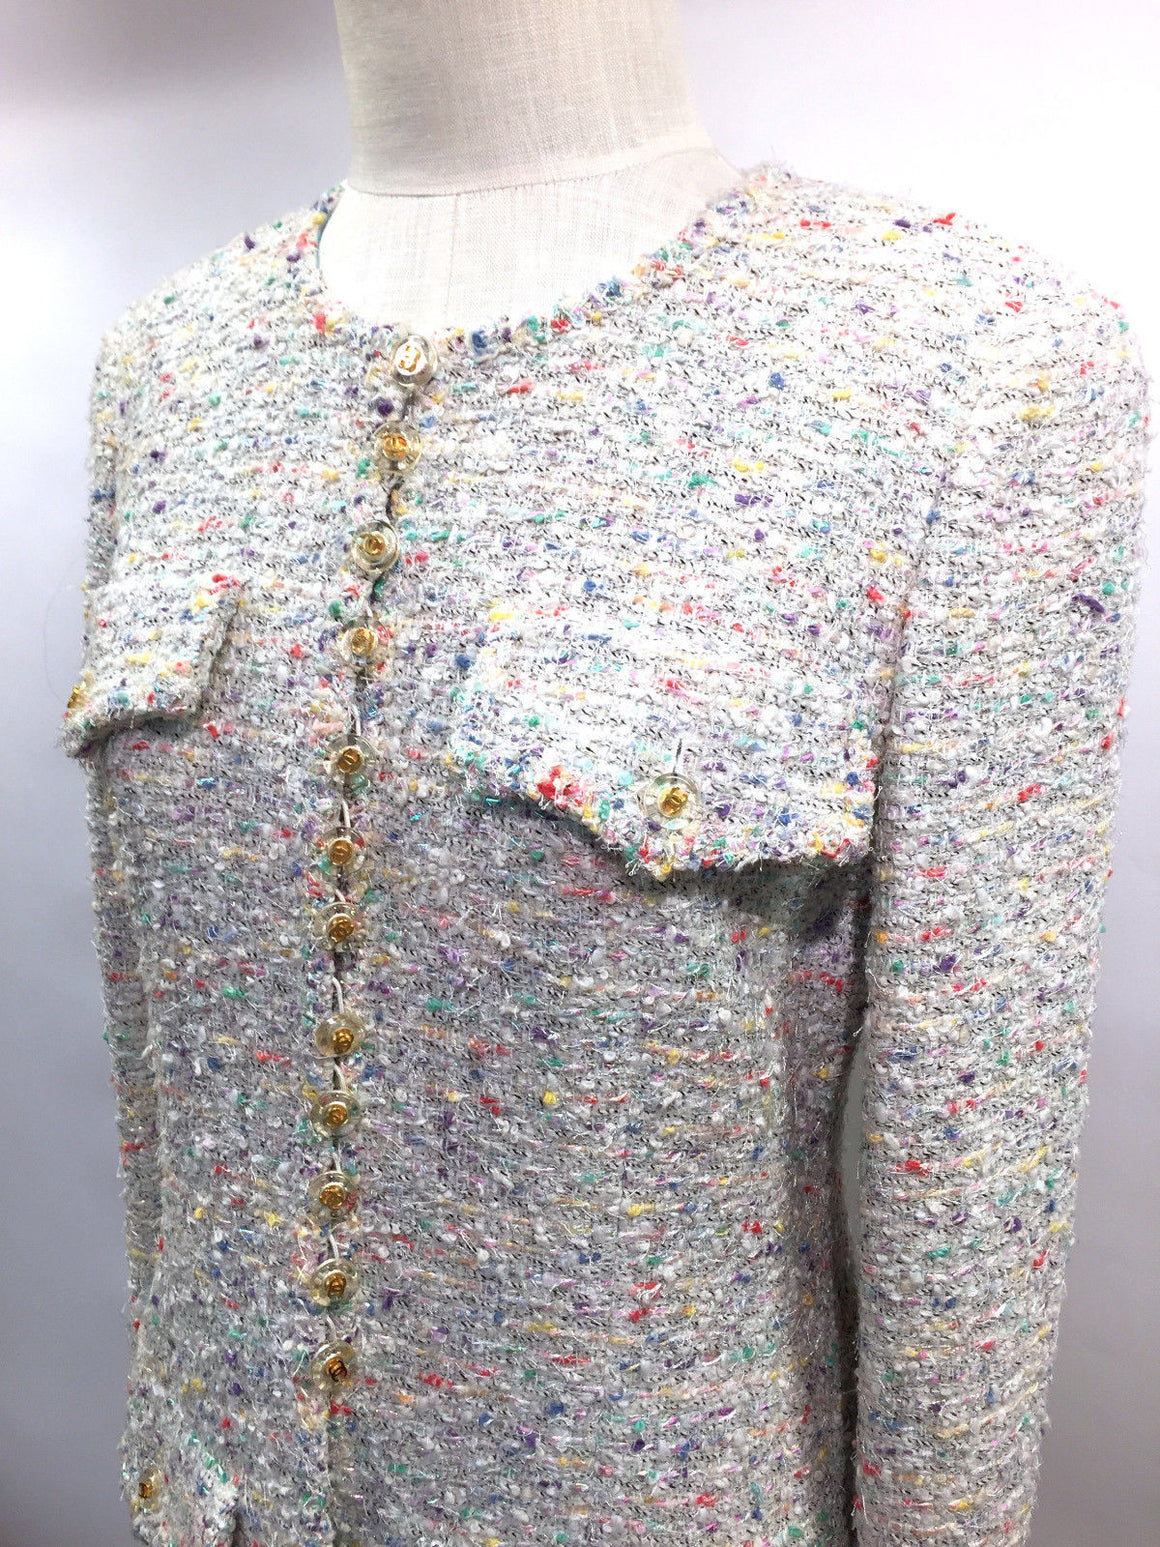 bisbiz.com CHANEL  White/Multicolor Iridescent Fantasy Tweed Coat w/Silk Print Lining  Size: Fr42/US8 - Bis Luxury Resale